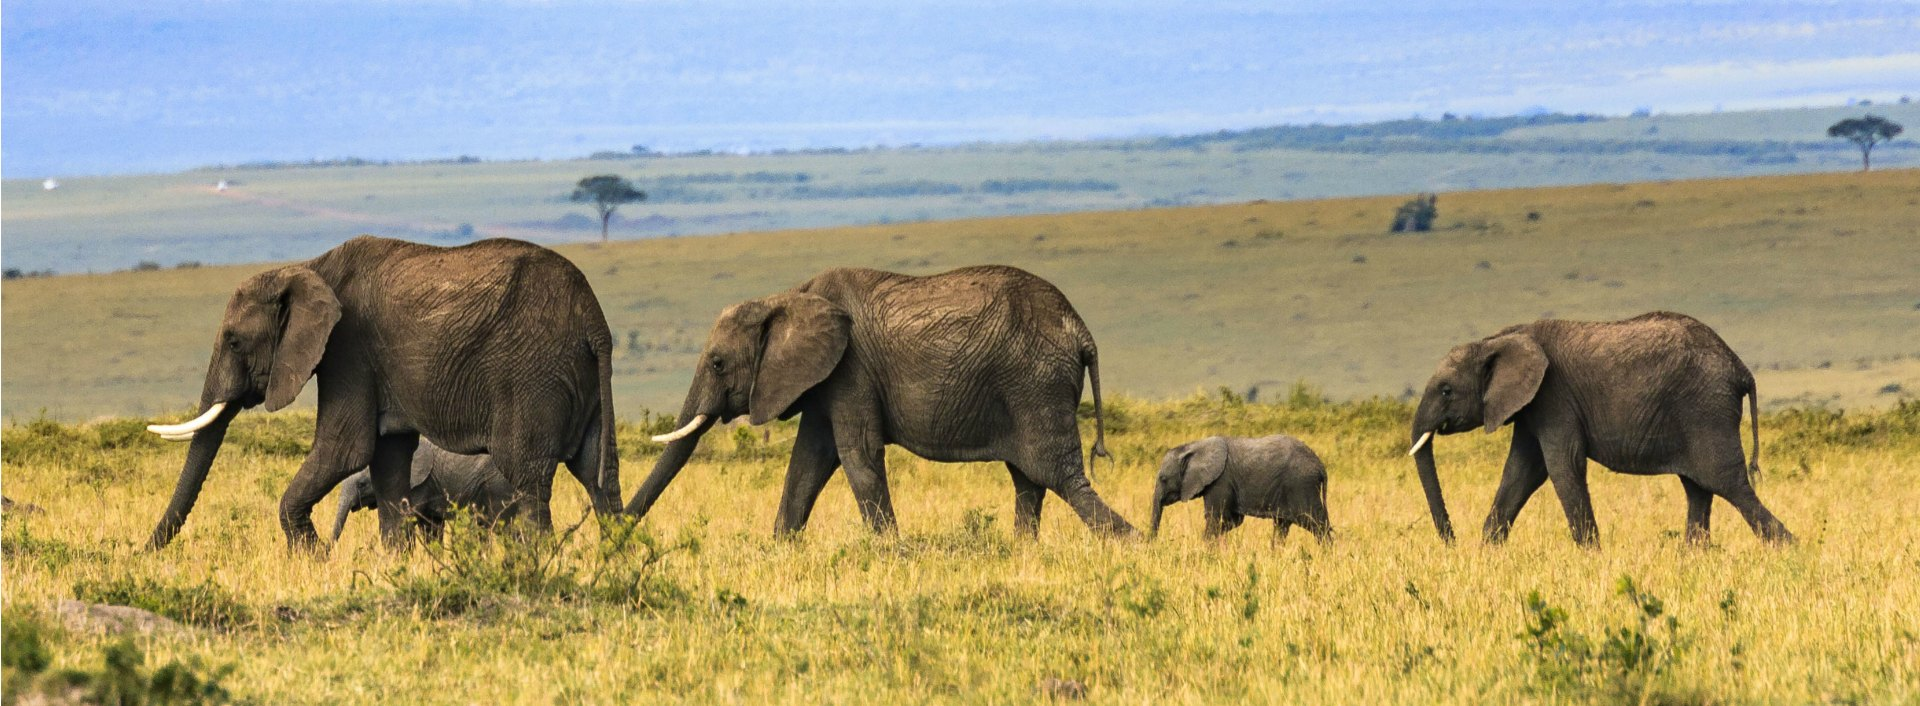 Both big and a small elephant walking in a row in the desert.